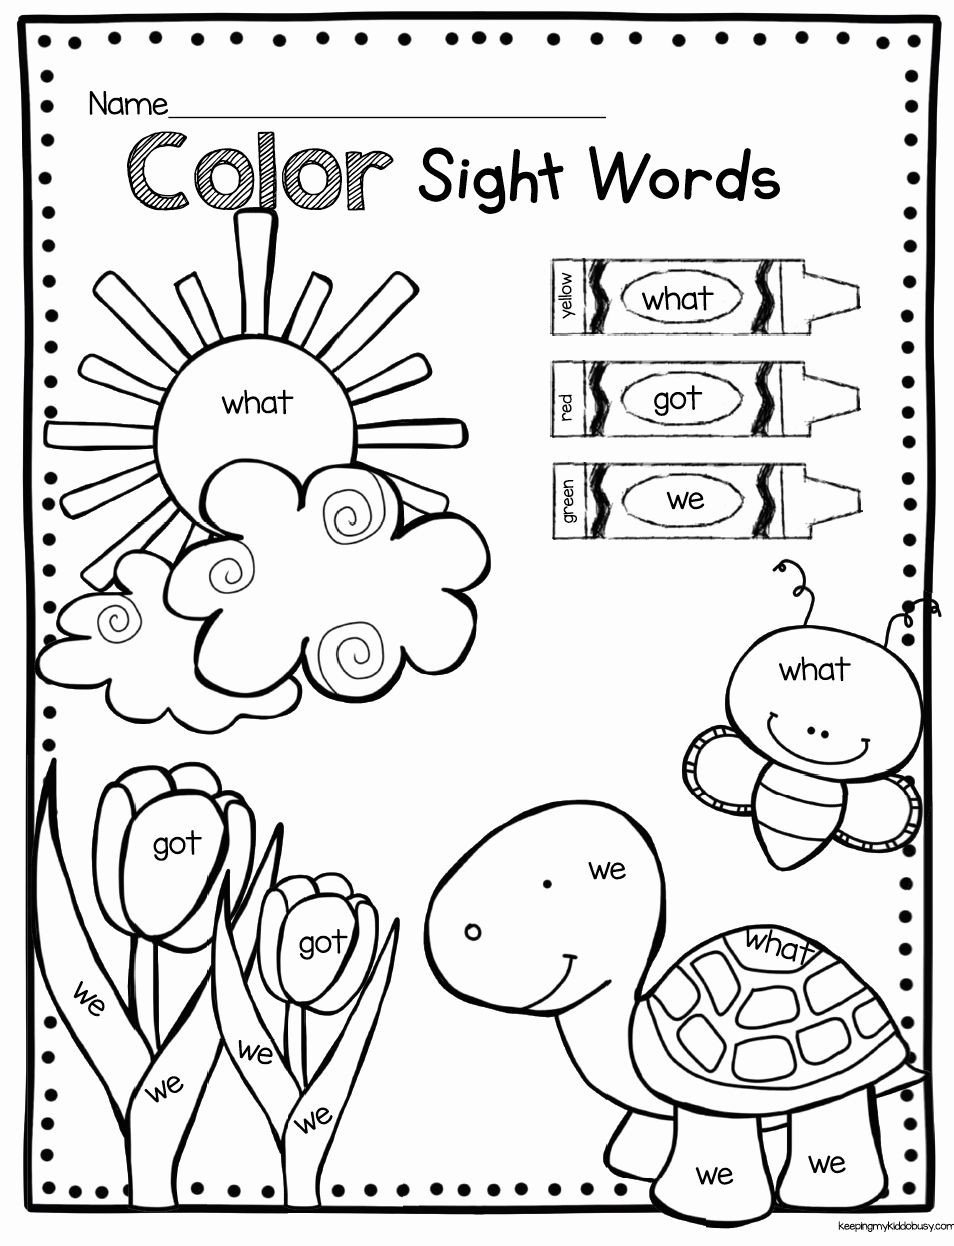 Kindergarten Color Words Worksheets Color Words Coloring Sheet In 2020